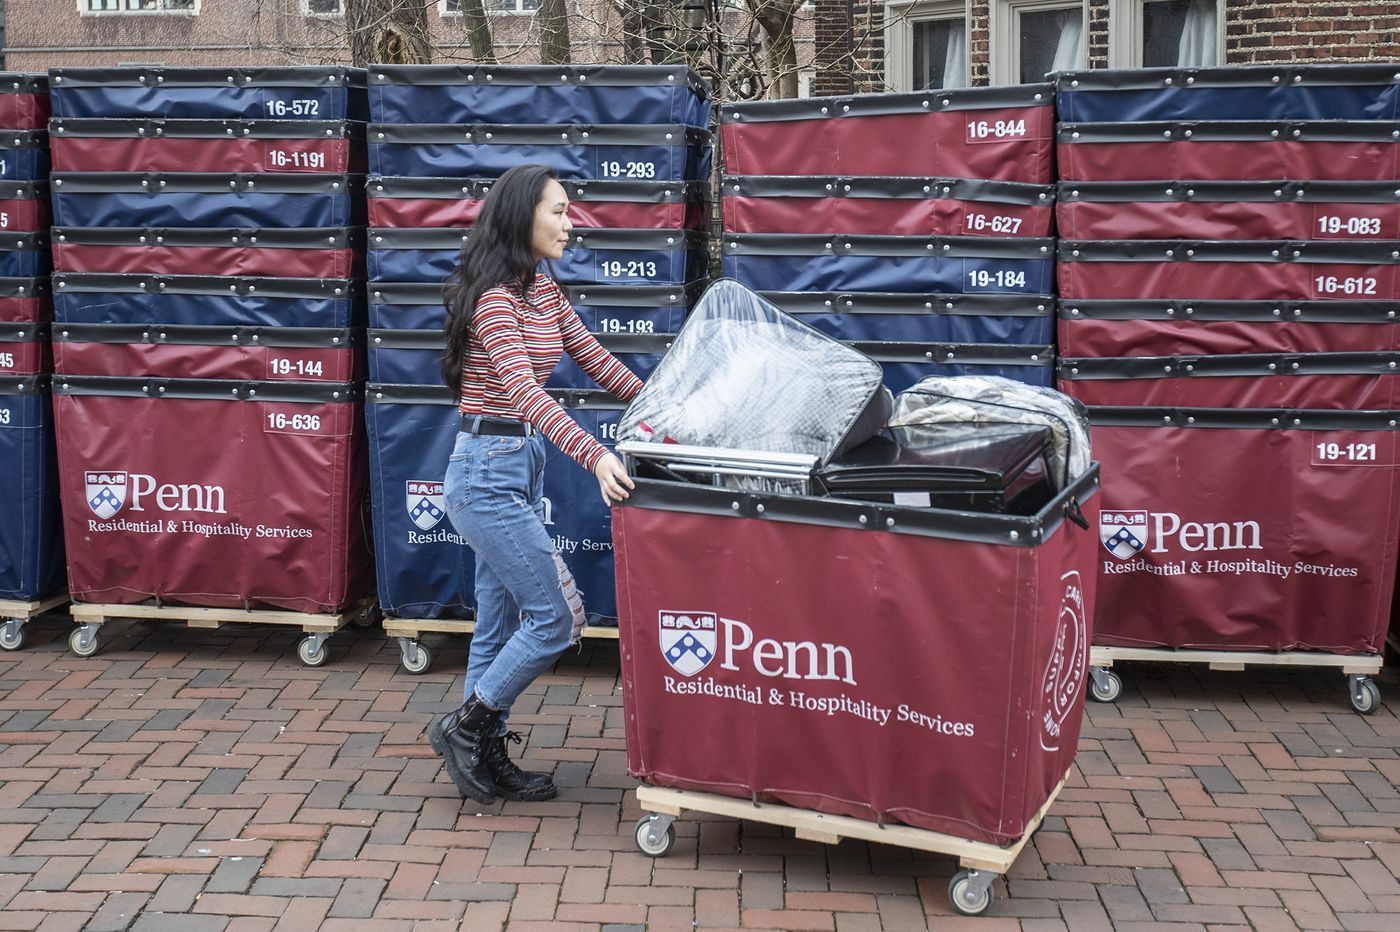 Penn is shutting its dorms to most students and moving classes online for the fall